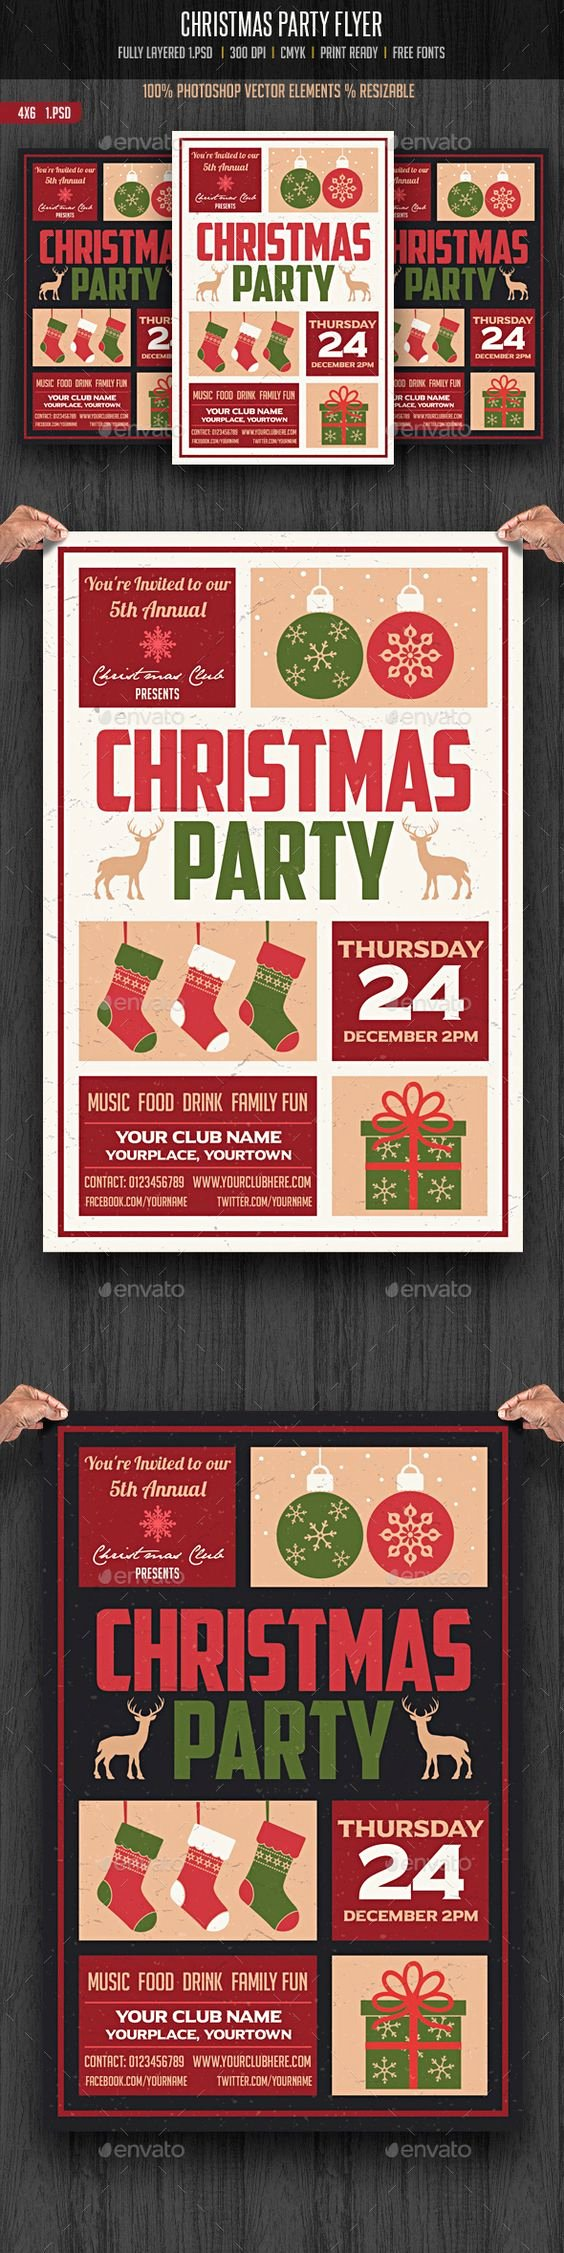 Christmas Party Flyer Template New Christmas Party Flyer